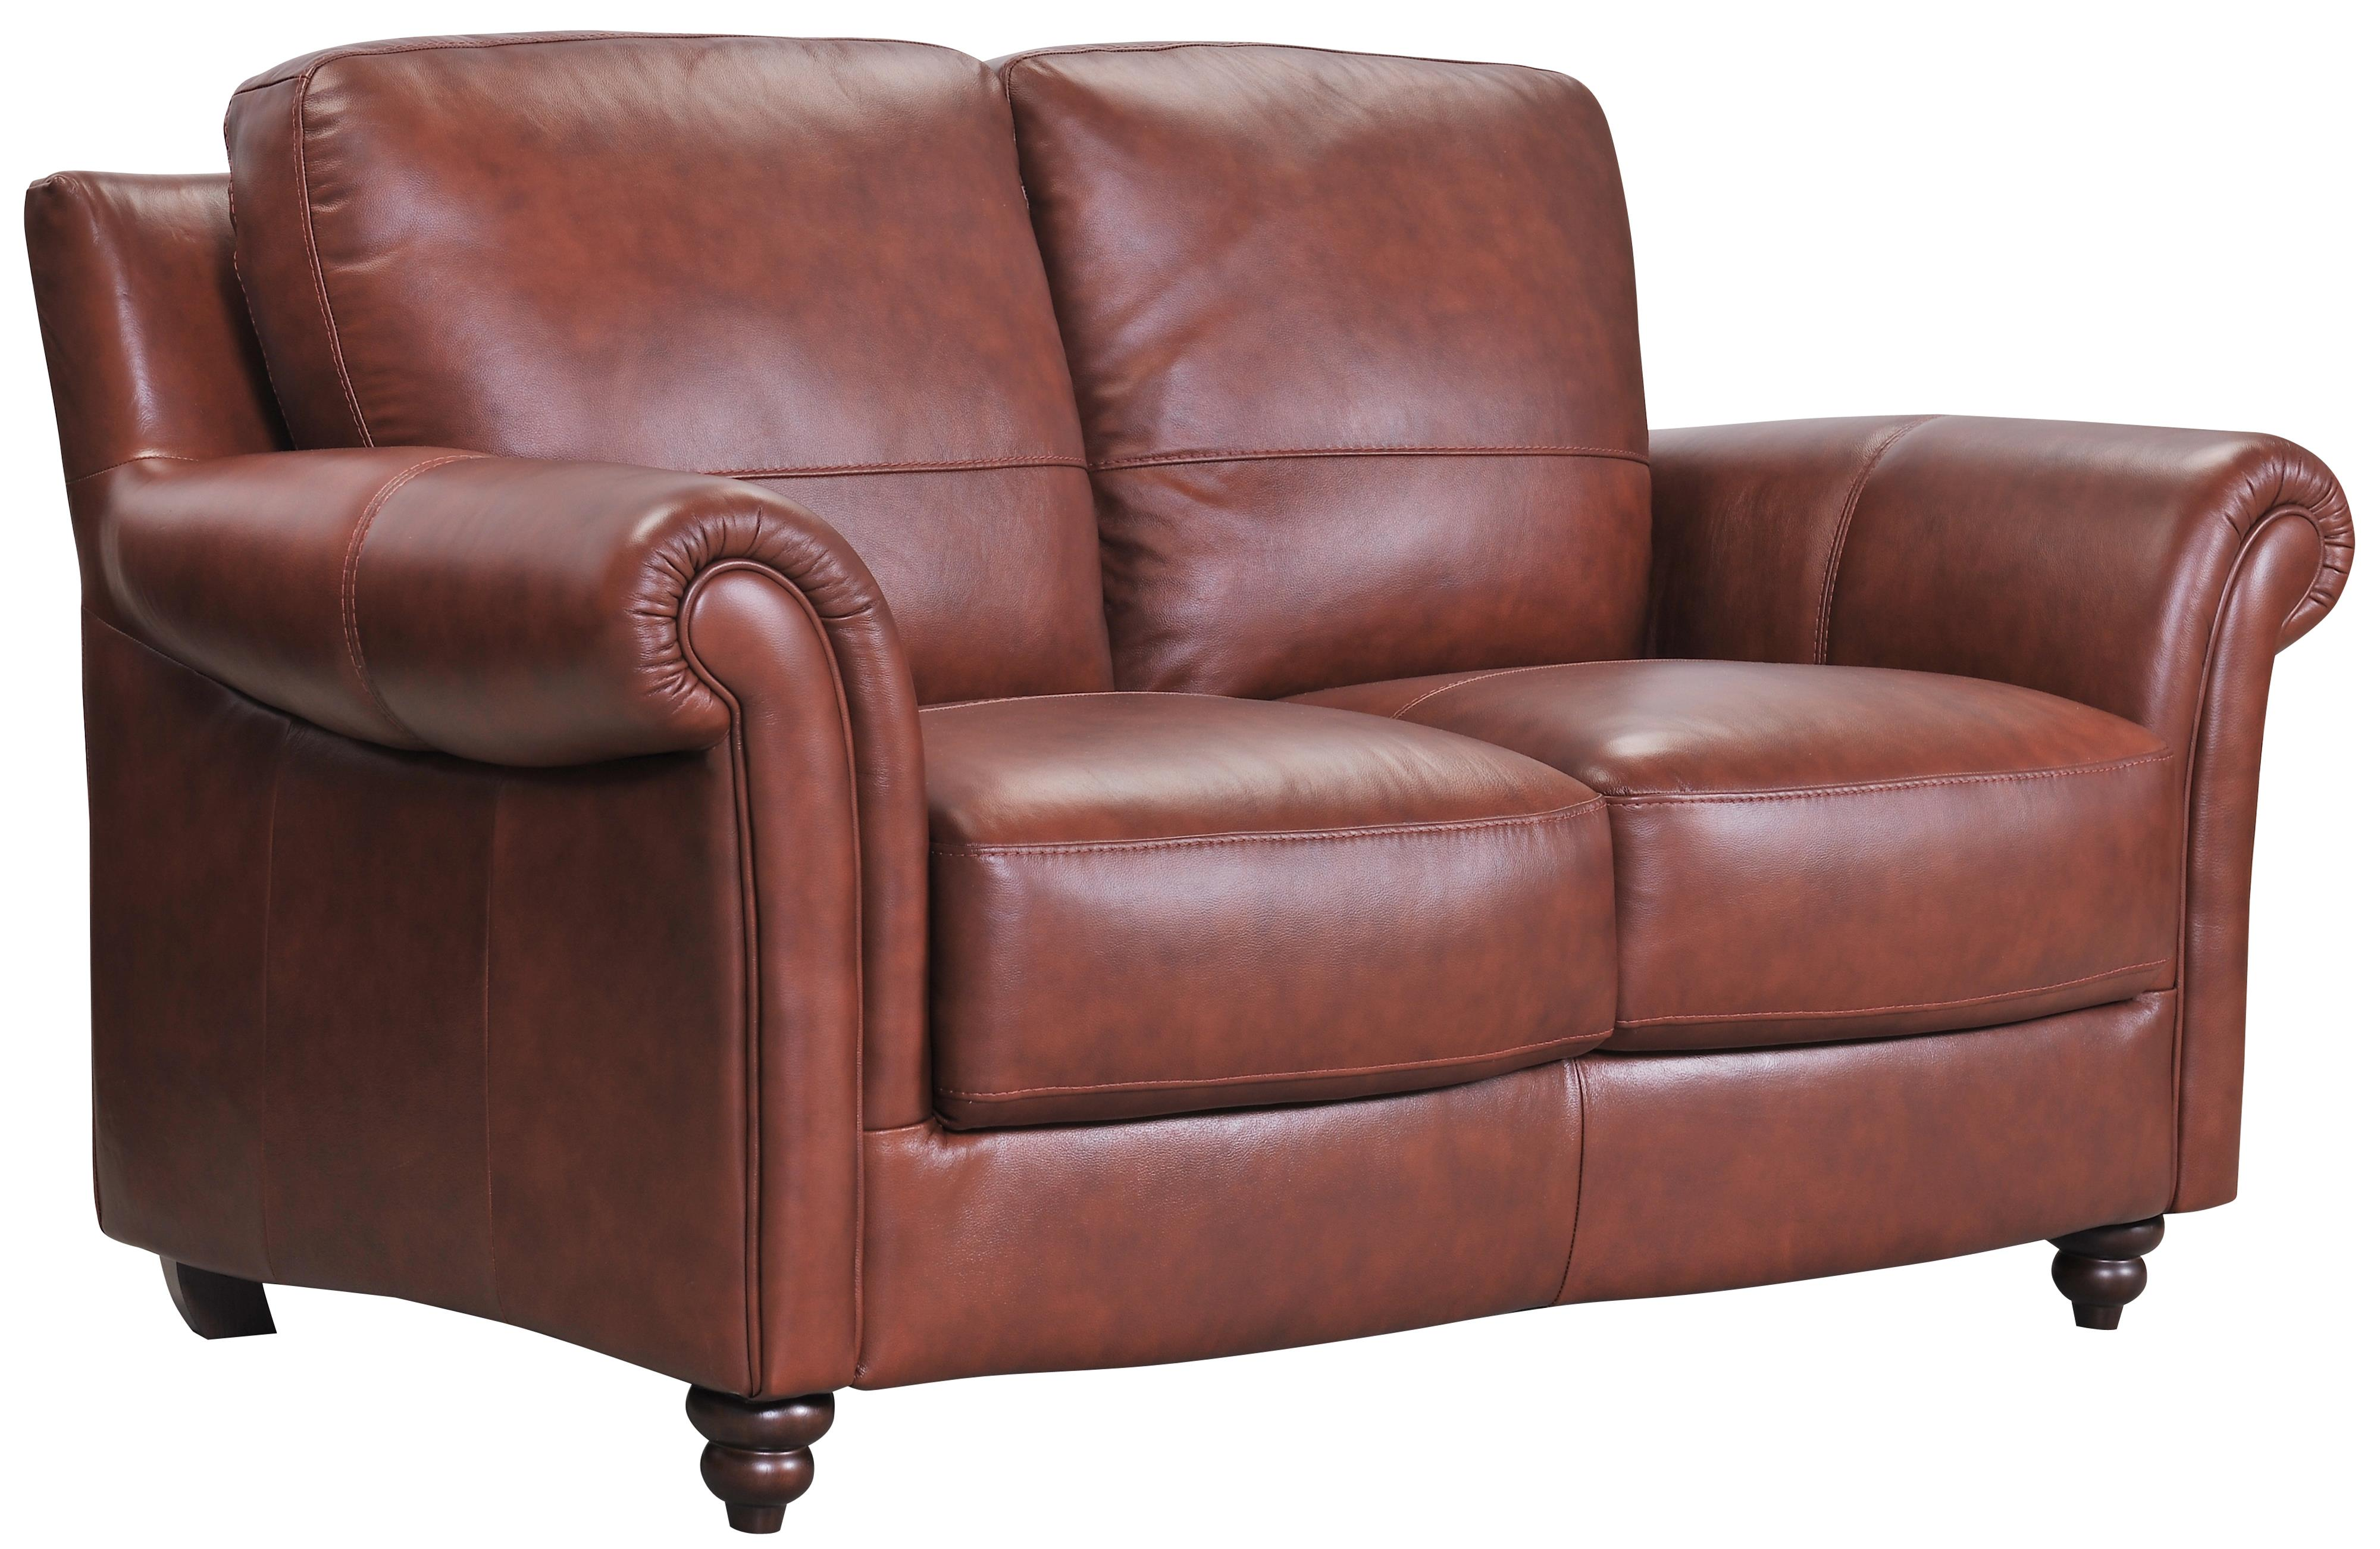 Grady Leather Love Seat by Violino at Furniture Superstore - Rochester, MN